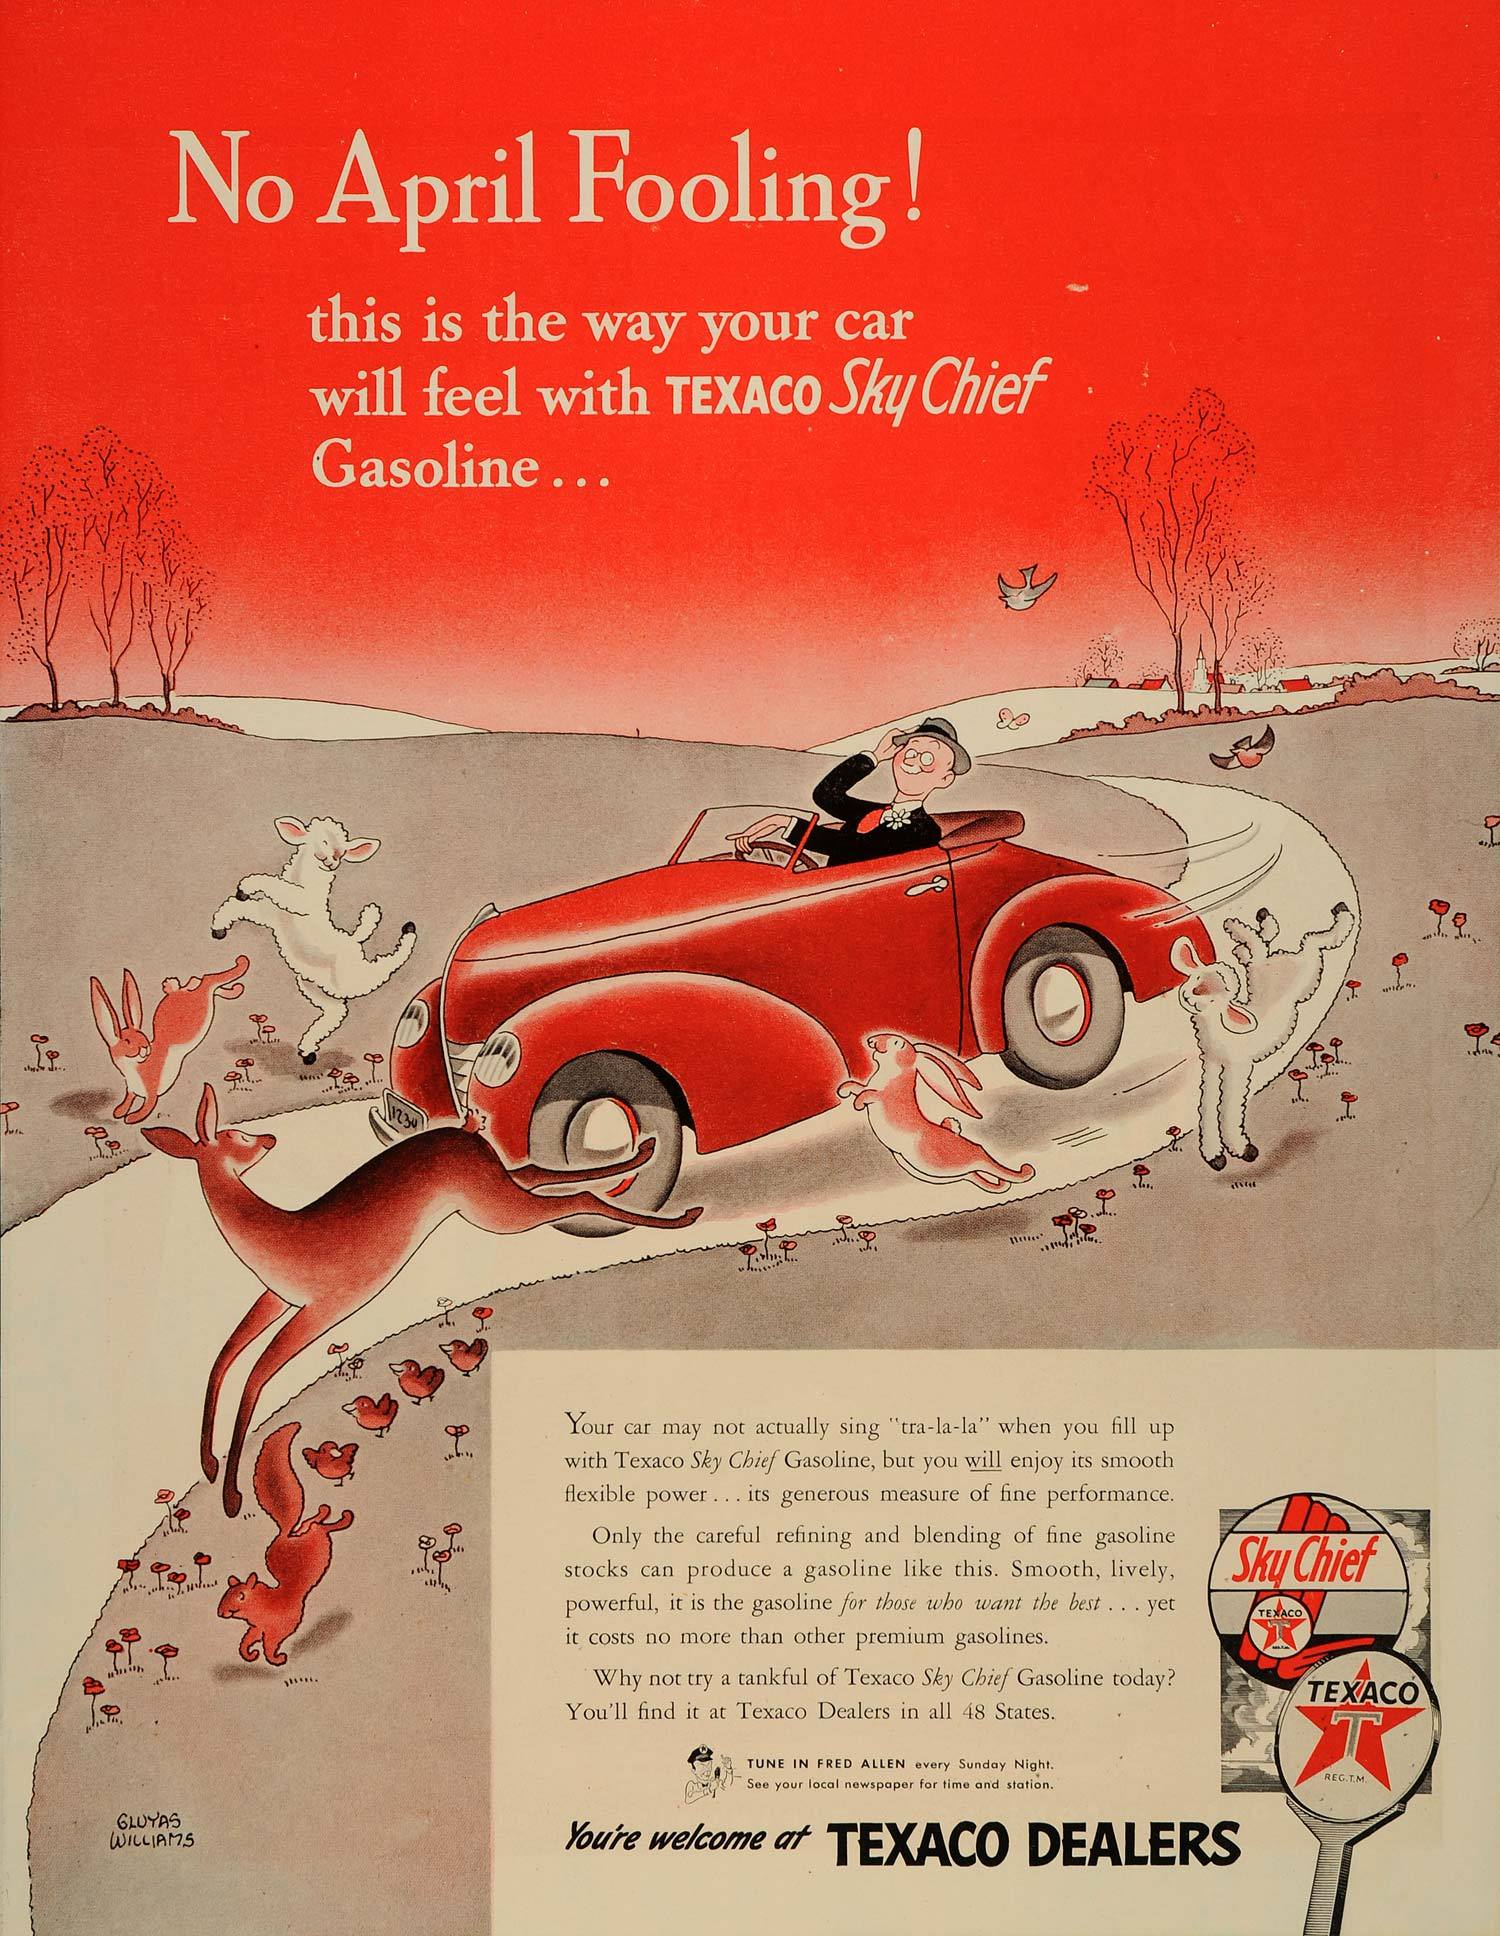 Texaco Sky Chief Gasoline - illustration by Gluyas Williams - 1937